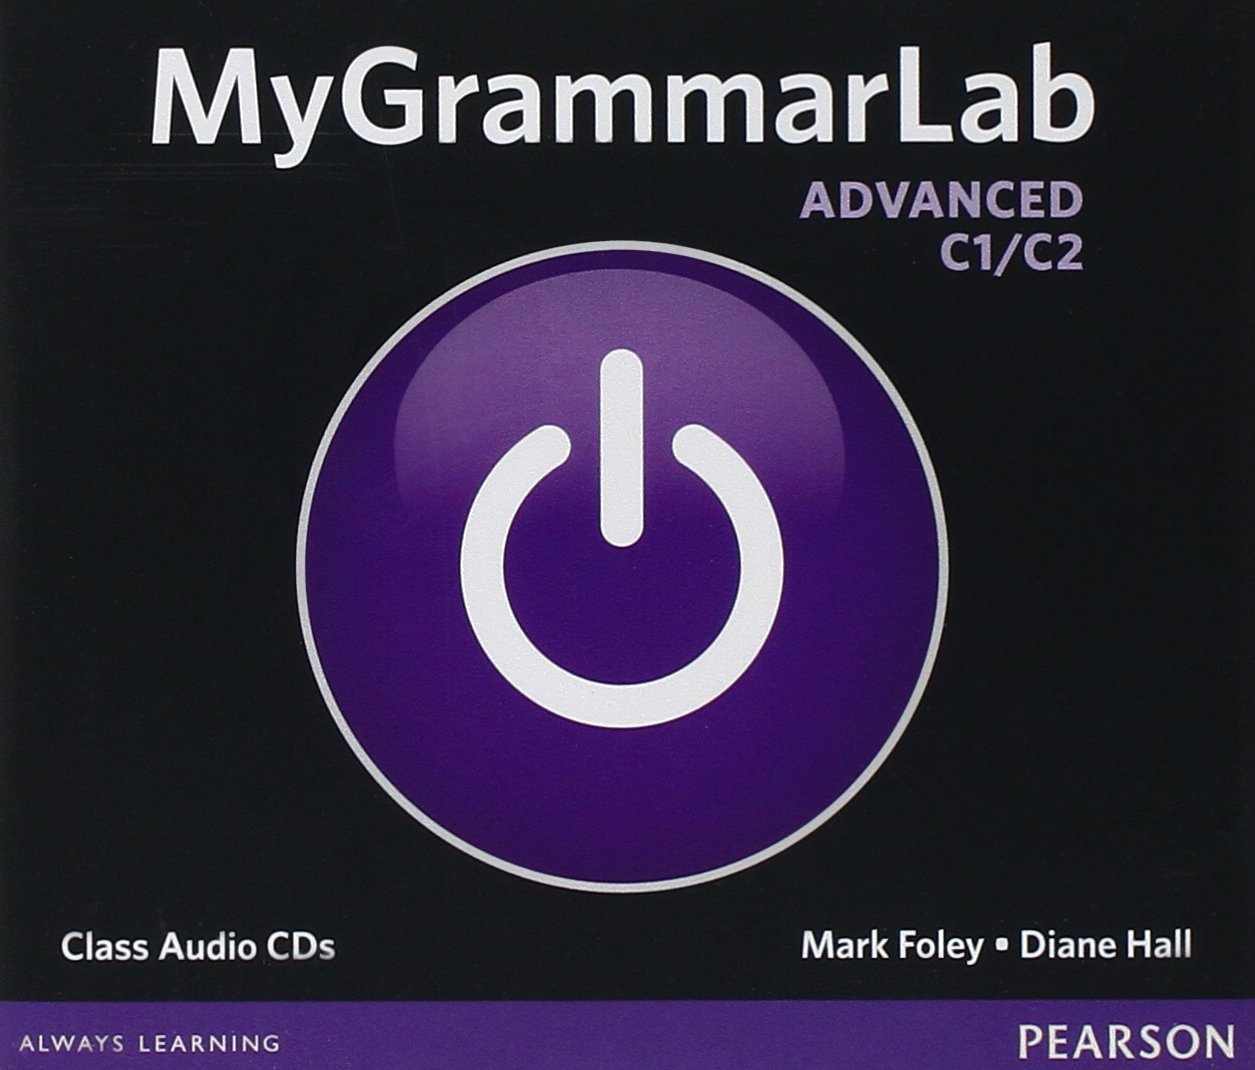 MYGRAMMARLAB ADVANCED Class Audio CD